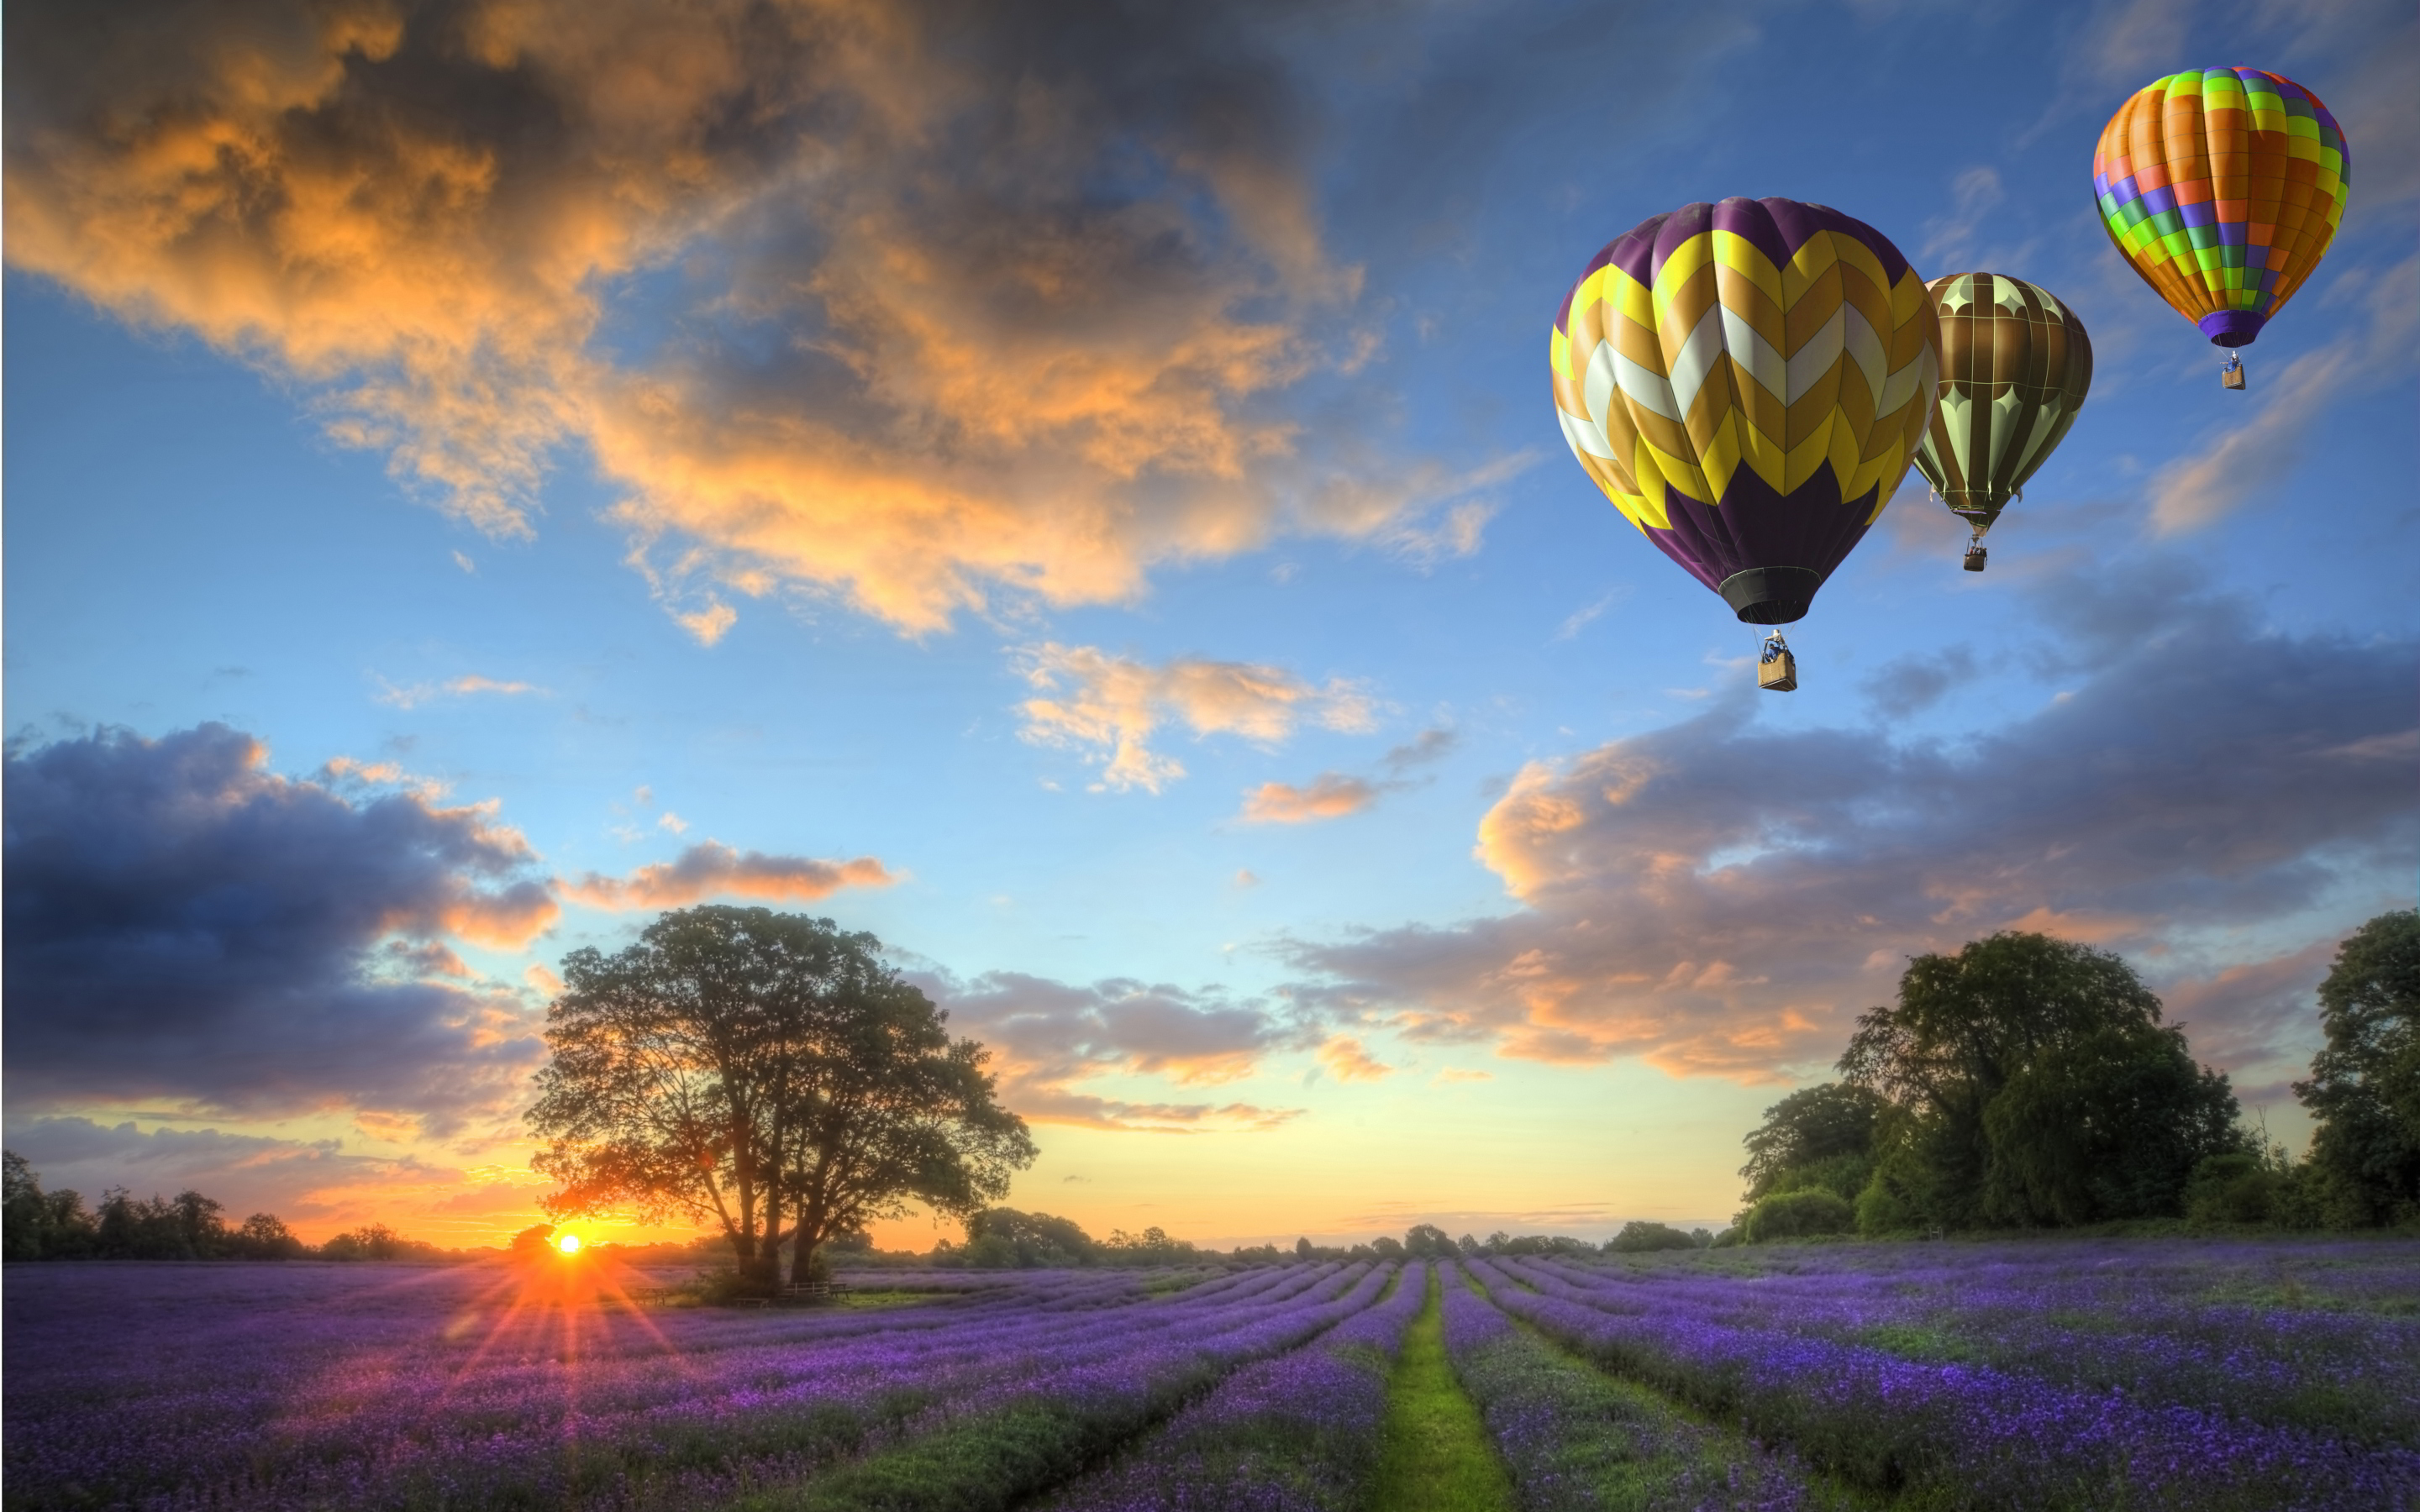 sunset images balloons